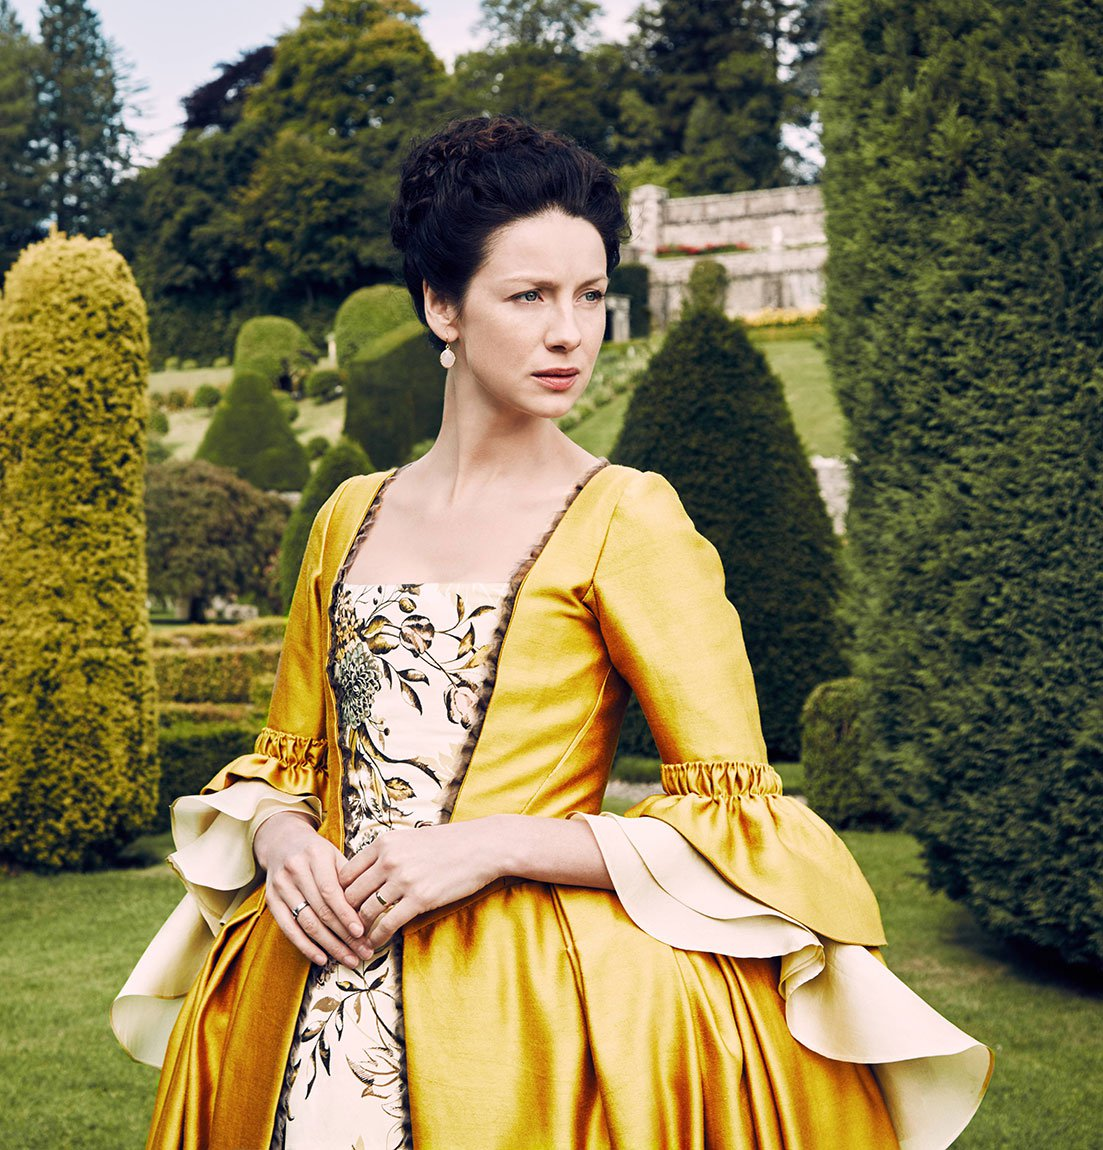 f6e6c58a9e6 After doing a little bit of research I decided to reproduce it for our Etsy  shop. The dress looks like a typical mid-1700 s gown with contrasting  stomacher ...